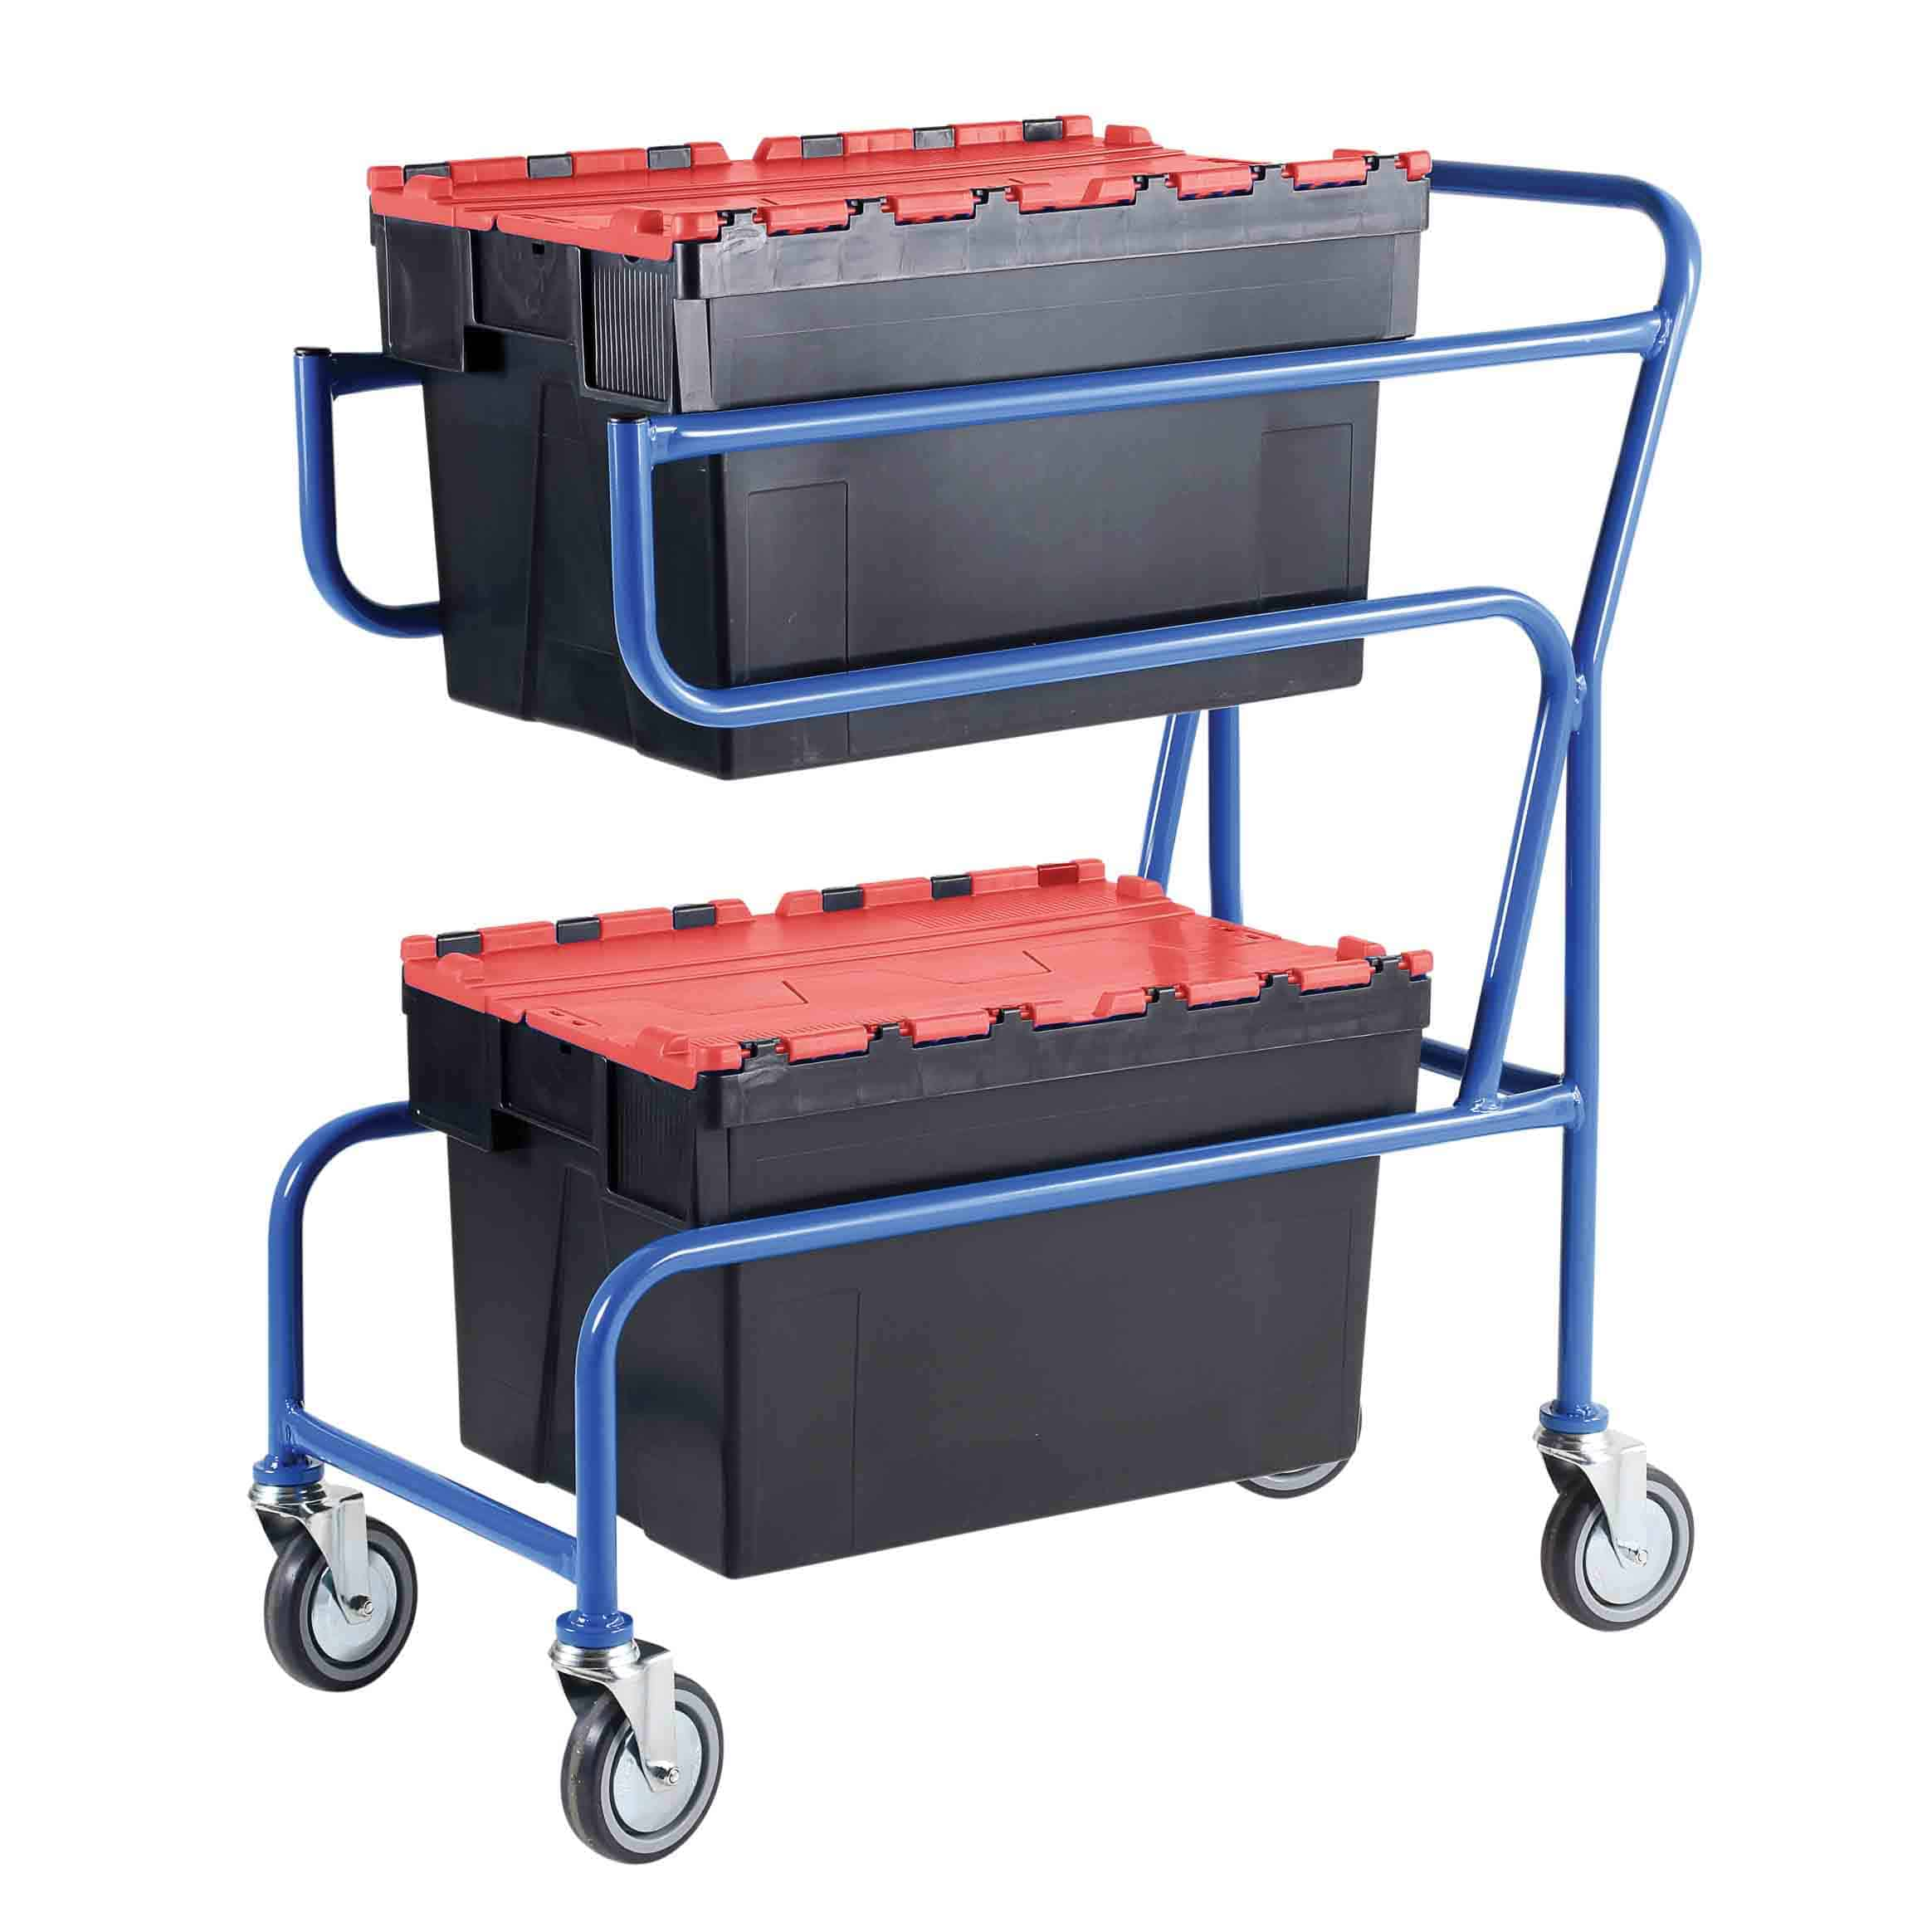 Multi-Trip Red Lidded Euro Container Trolley